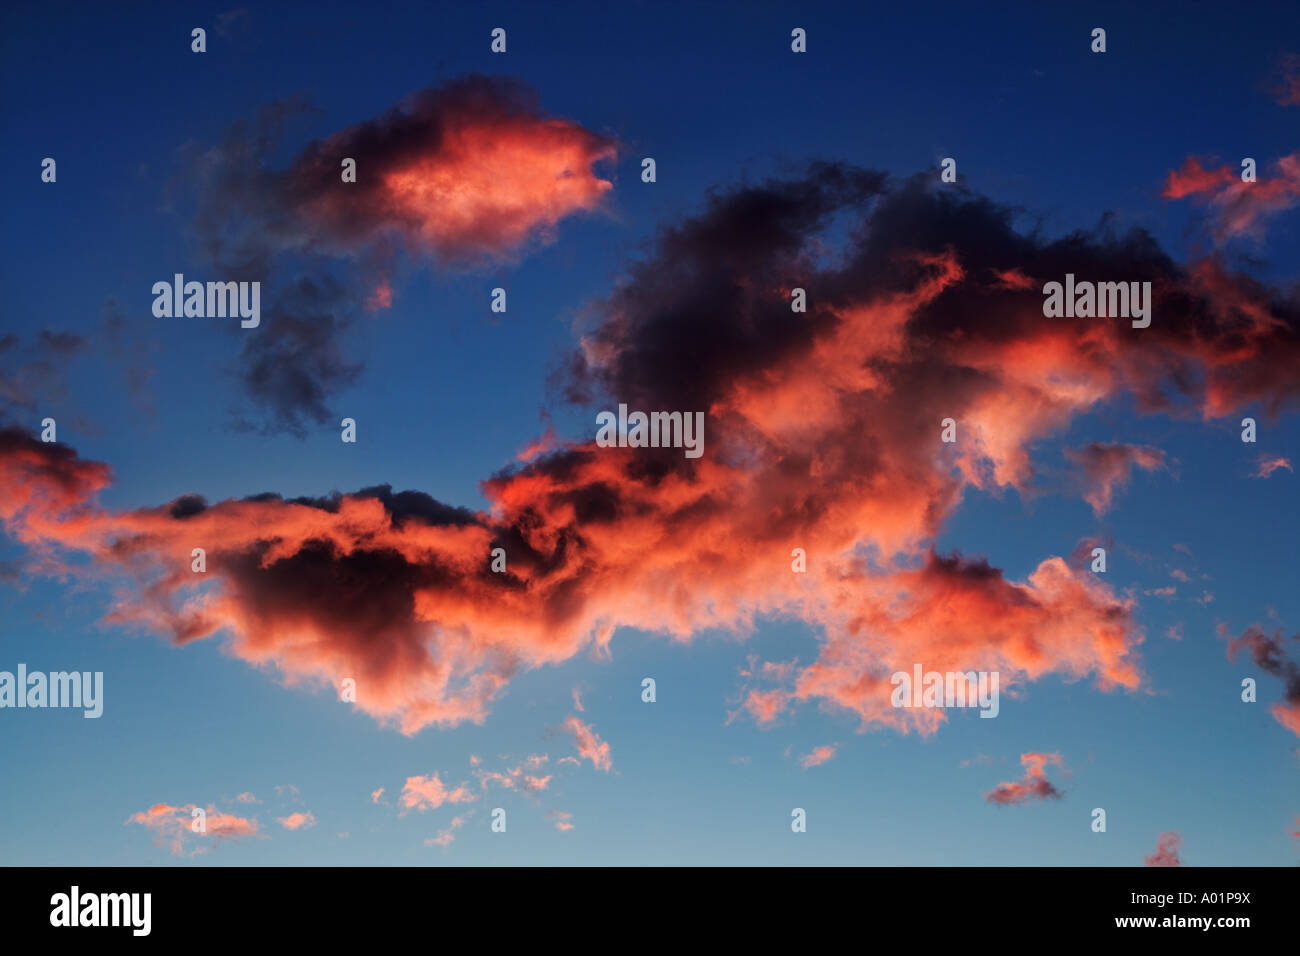 Cloud formation at sunrise or sunset - Stock Image